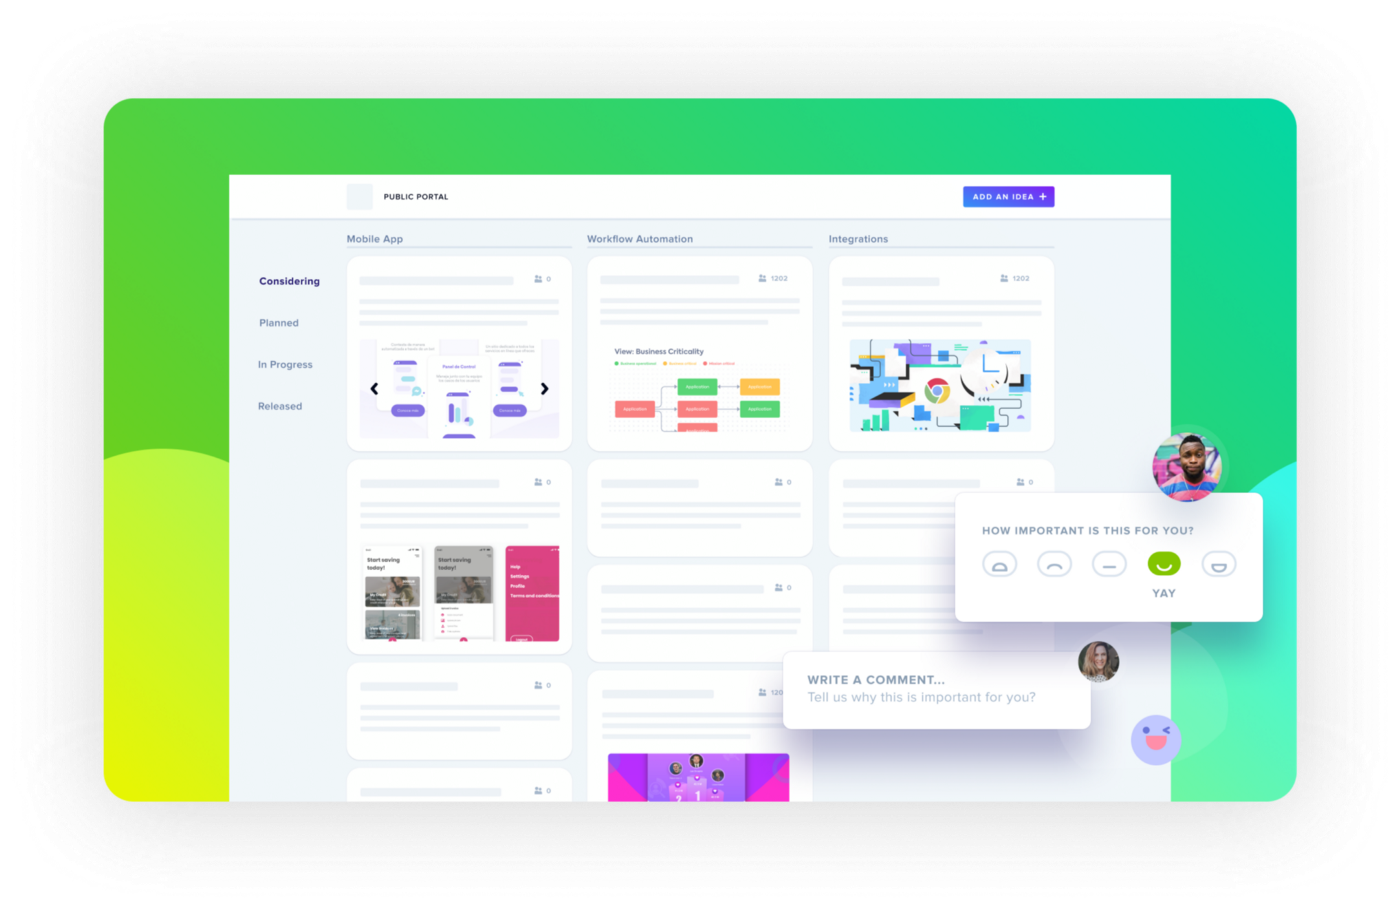 Gather new feature ideas from your stakeholders and users